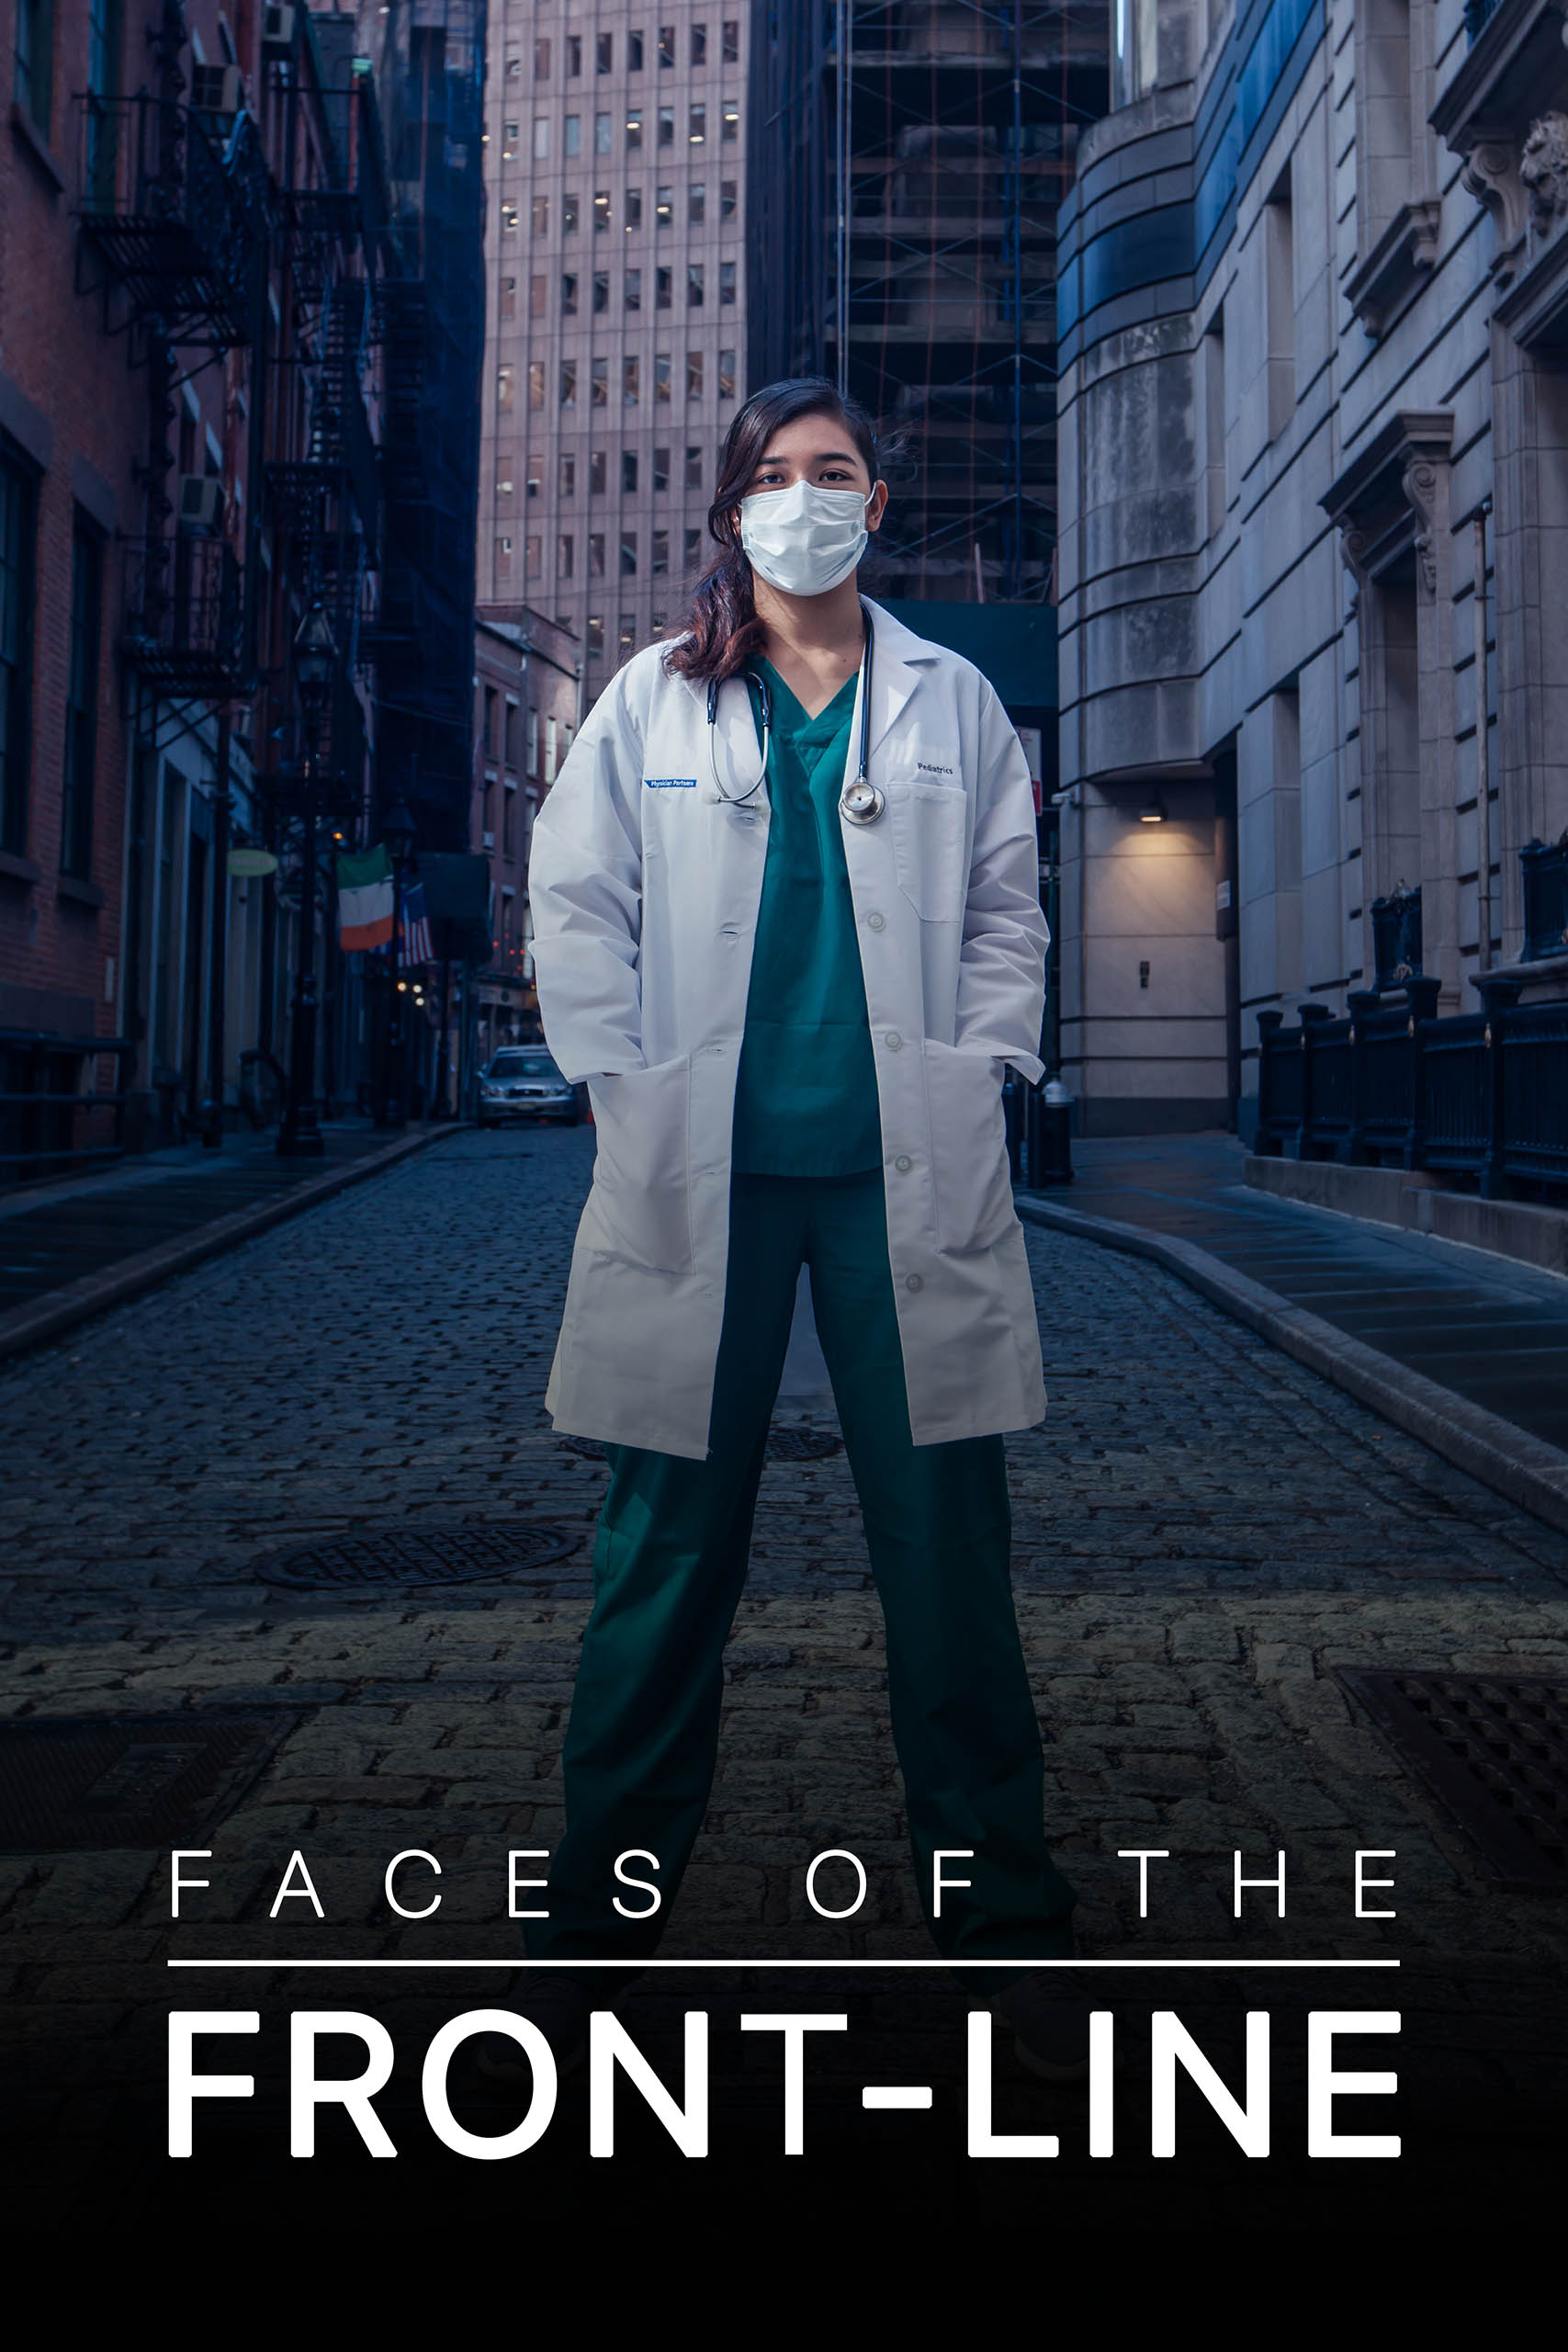 Faces of the Front-Line, a portrait series of New York City's front-line workers during the COVID-19 pandemic lockdown.